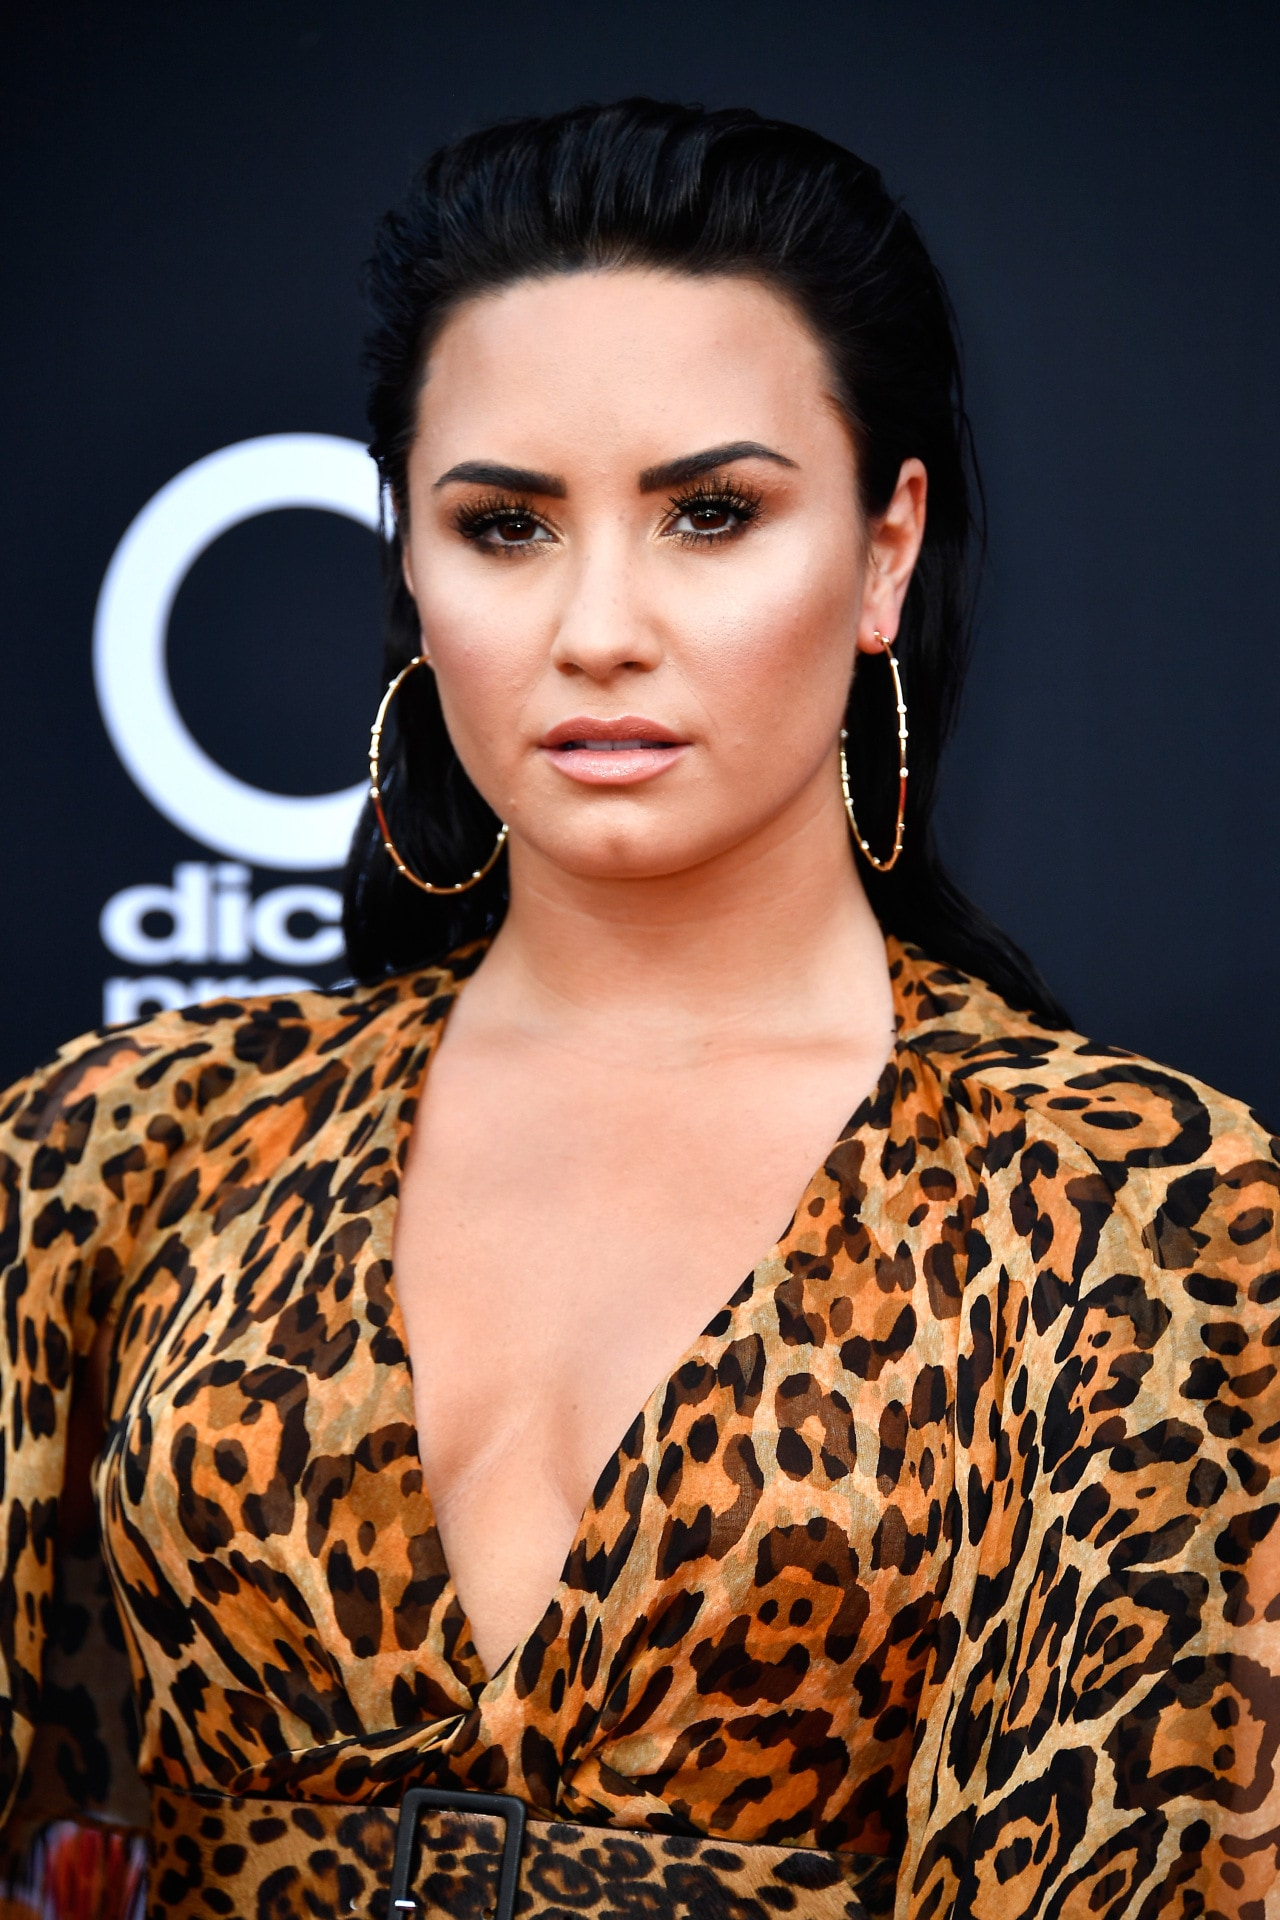 Demi Lovato's mother has opened up about her daughter's overdose